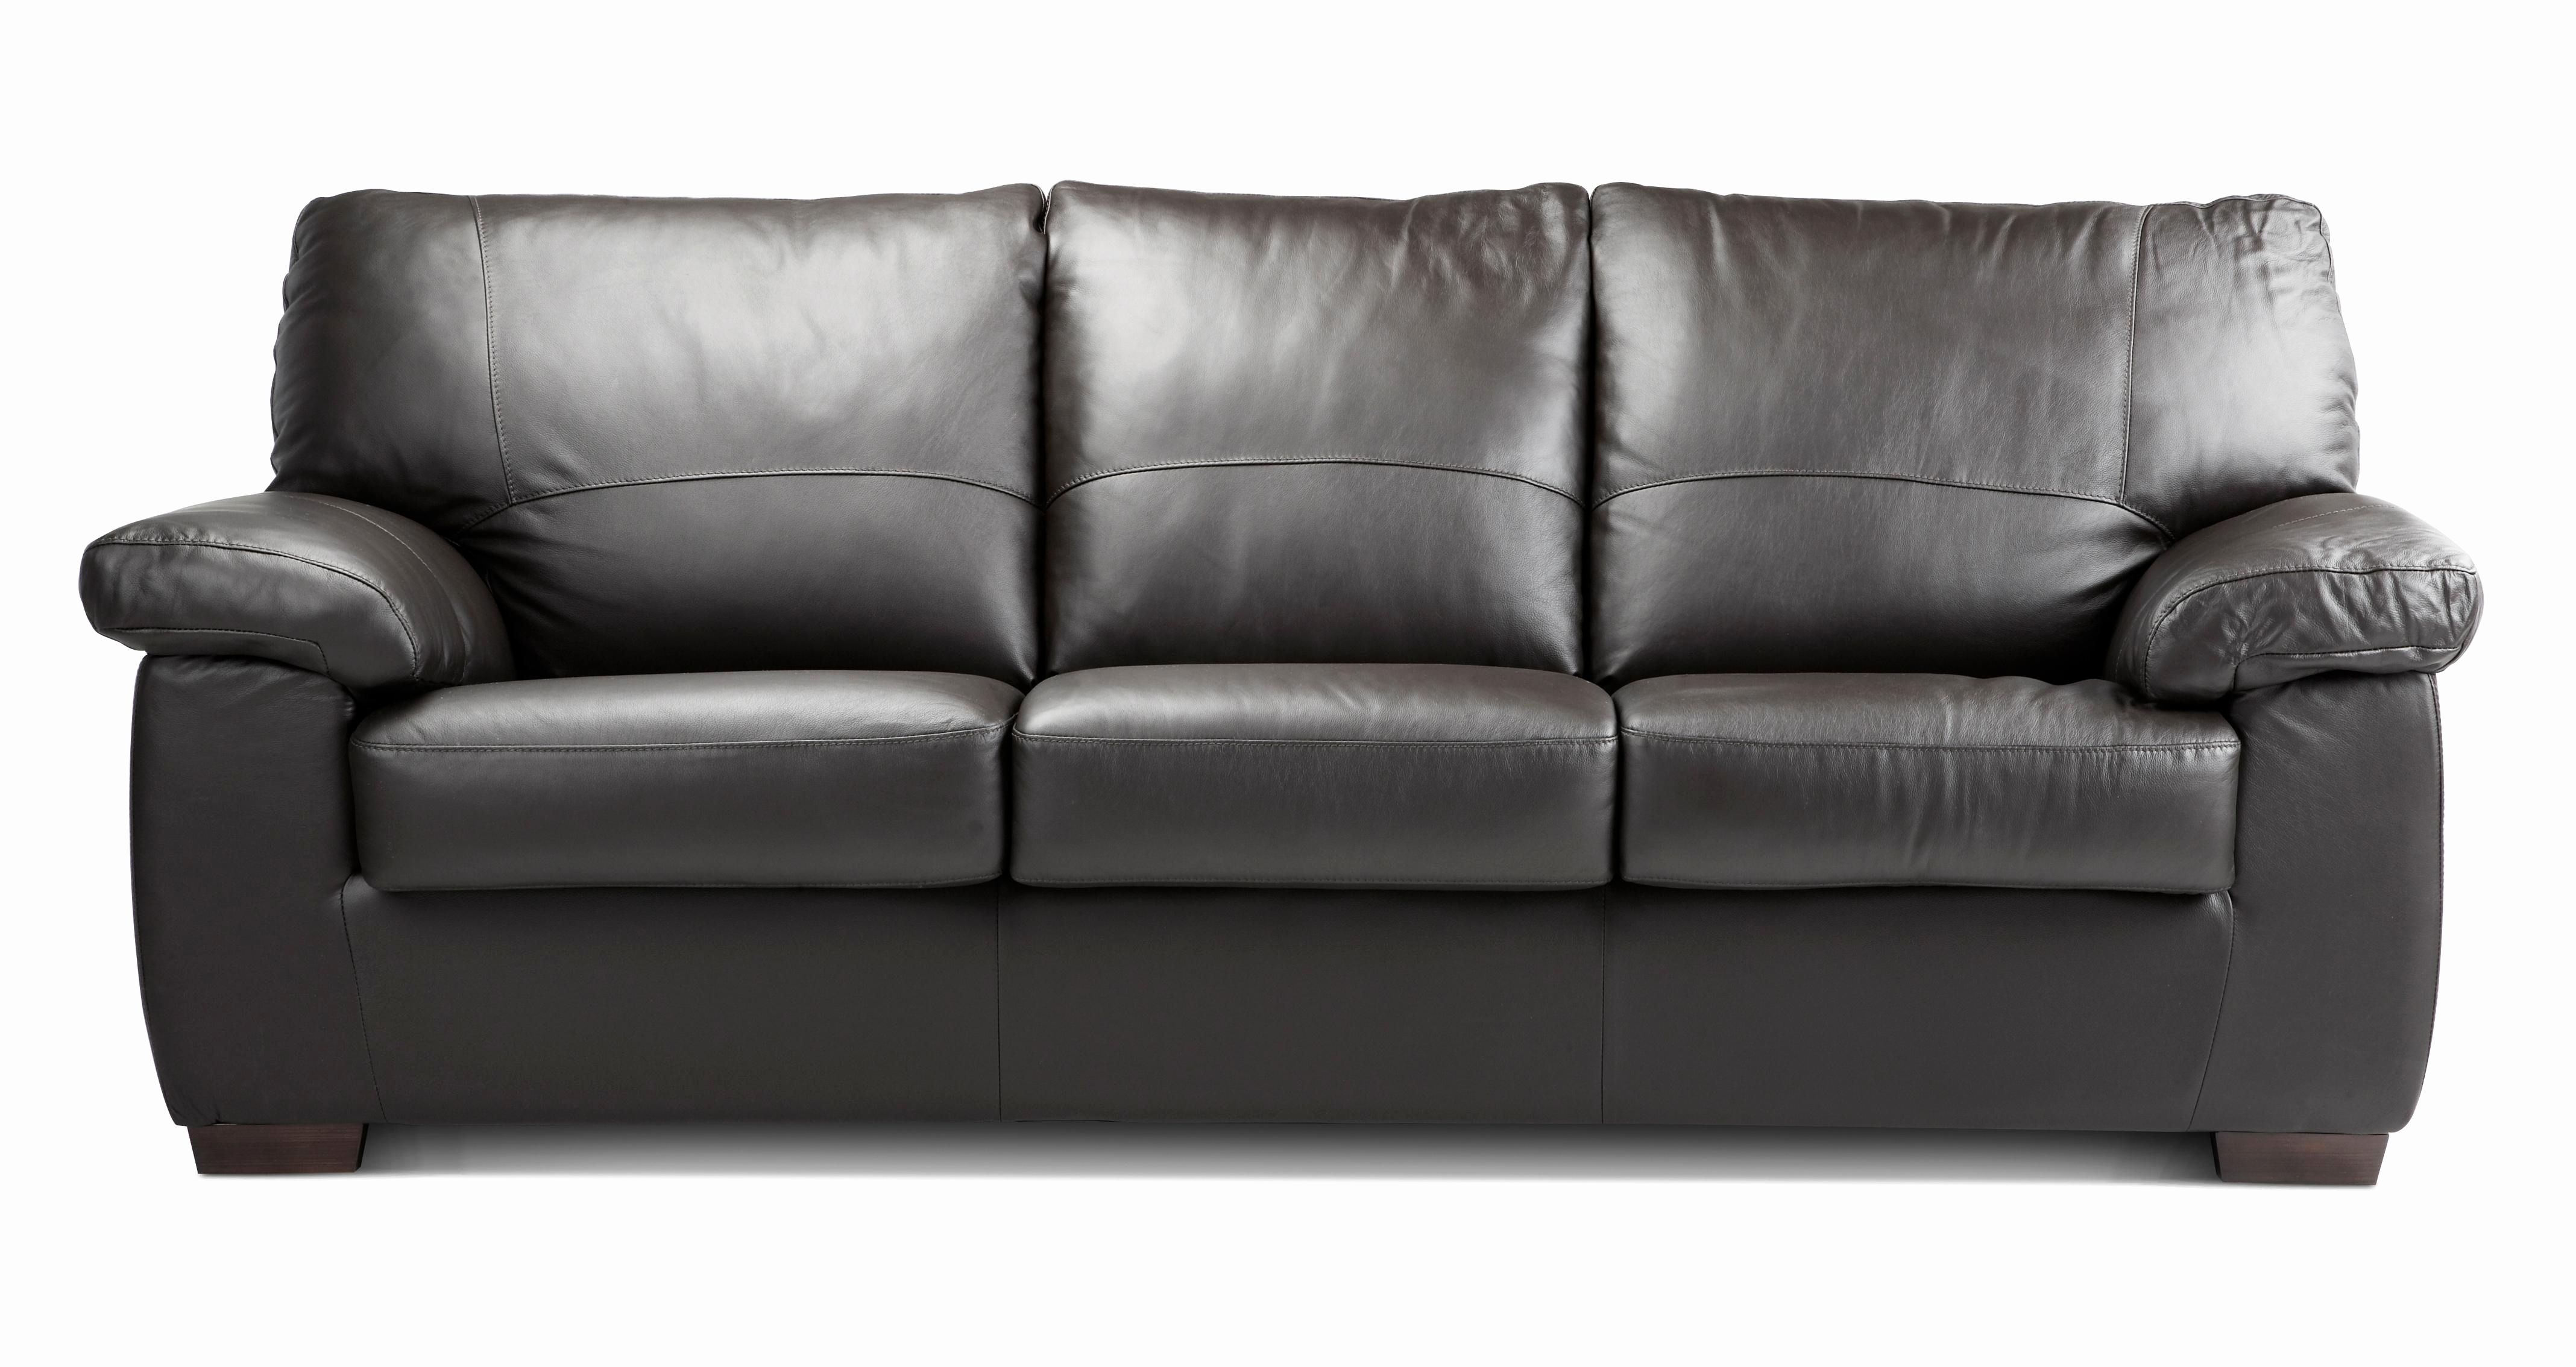 New Black Leather Sofas Images